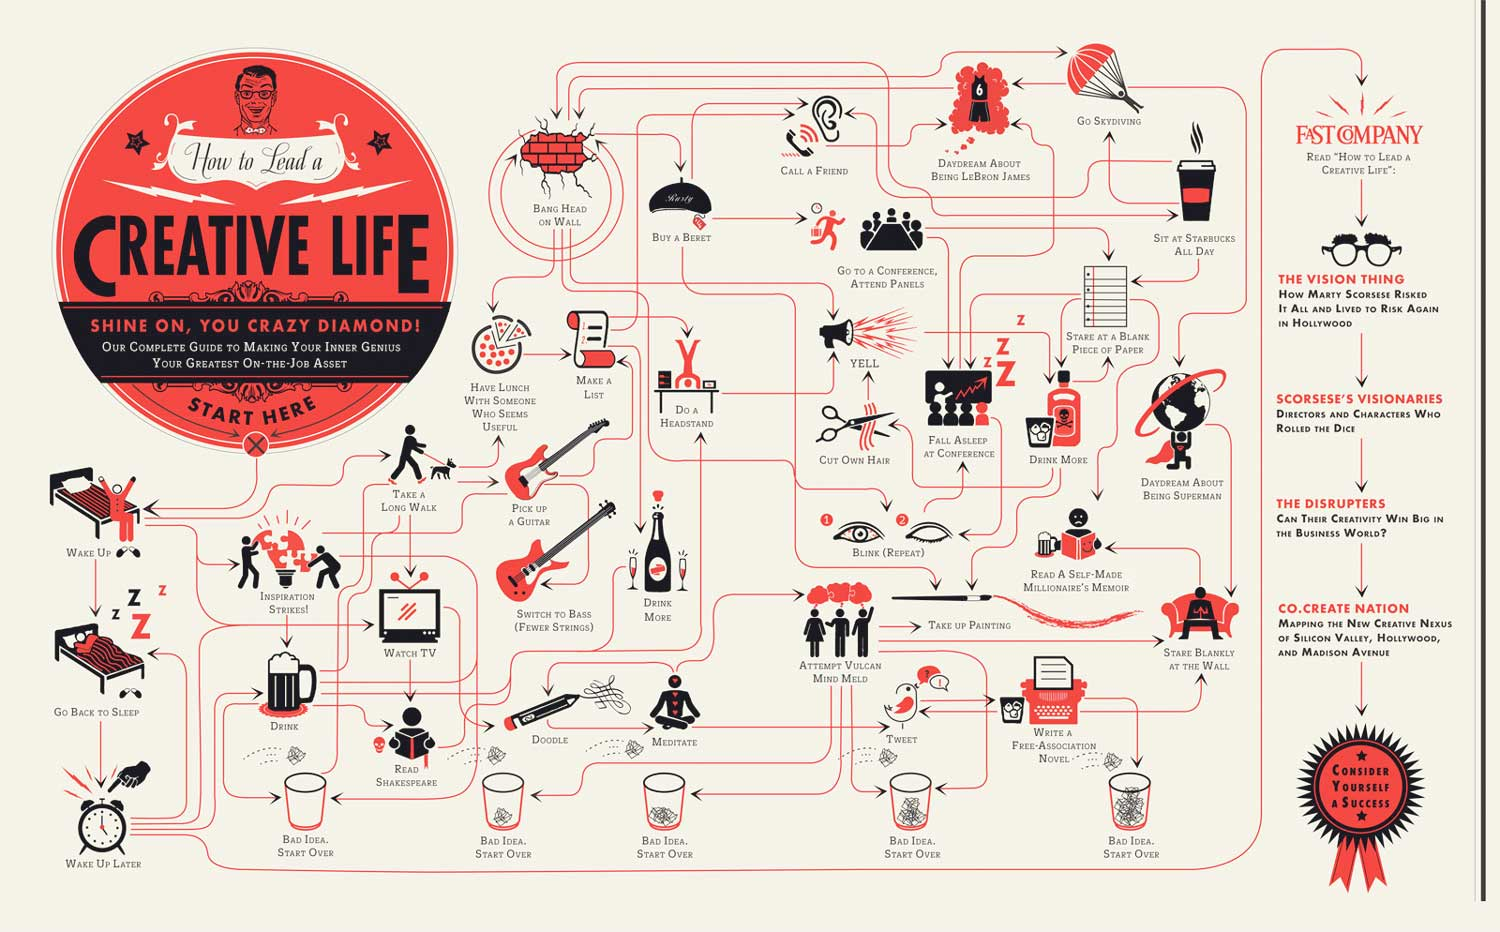 How to Lead a Creative Life